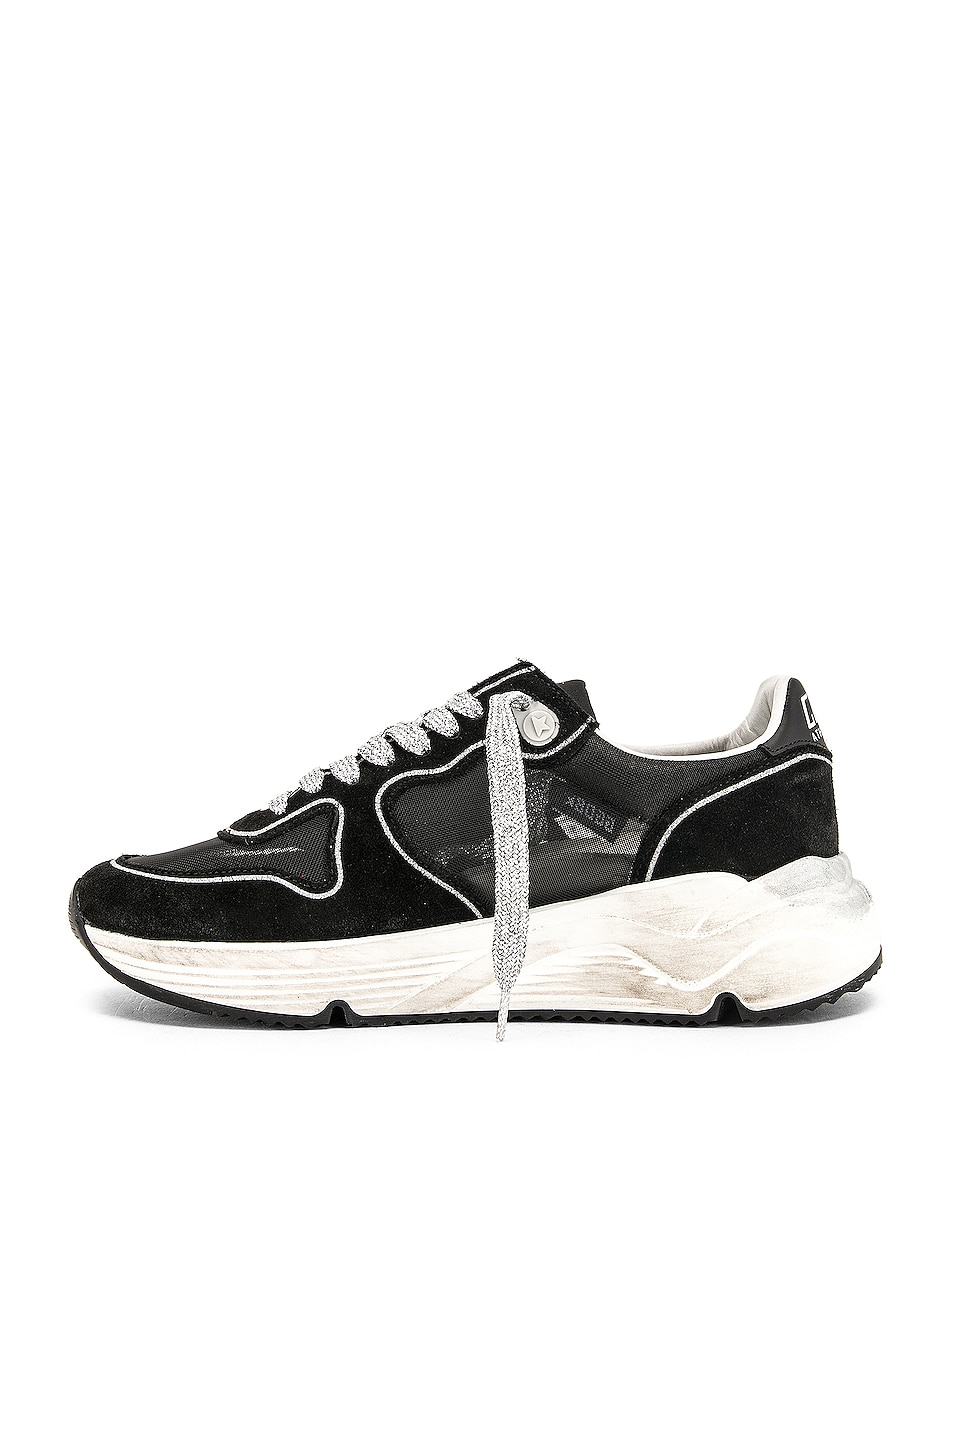 Image 5 of Golden Goose Running Sole Sneakers in Black & Red Star